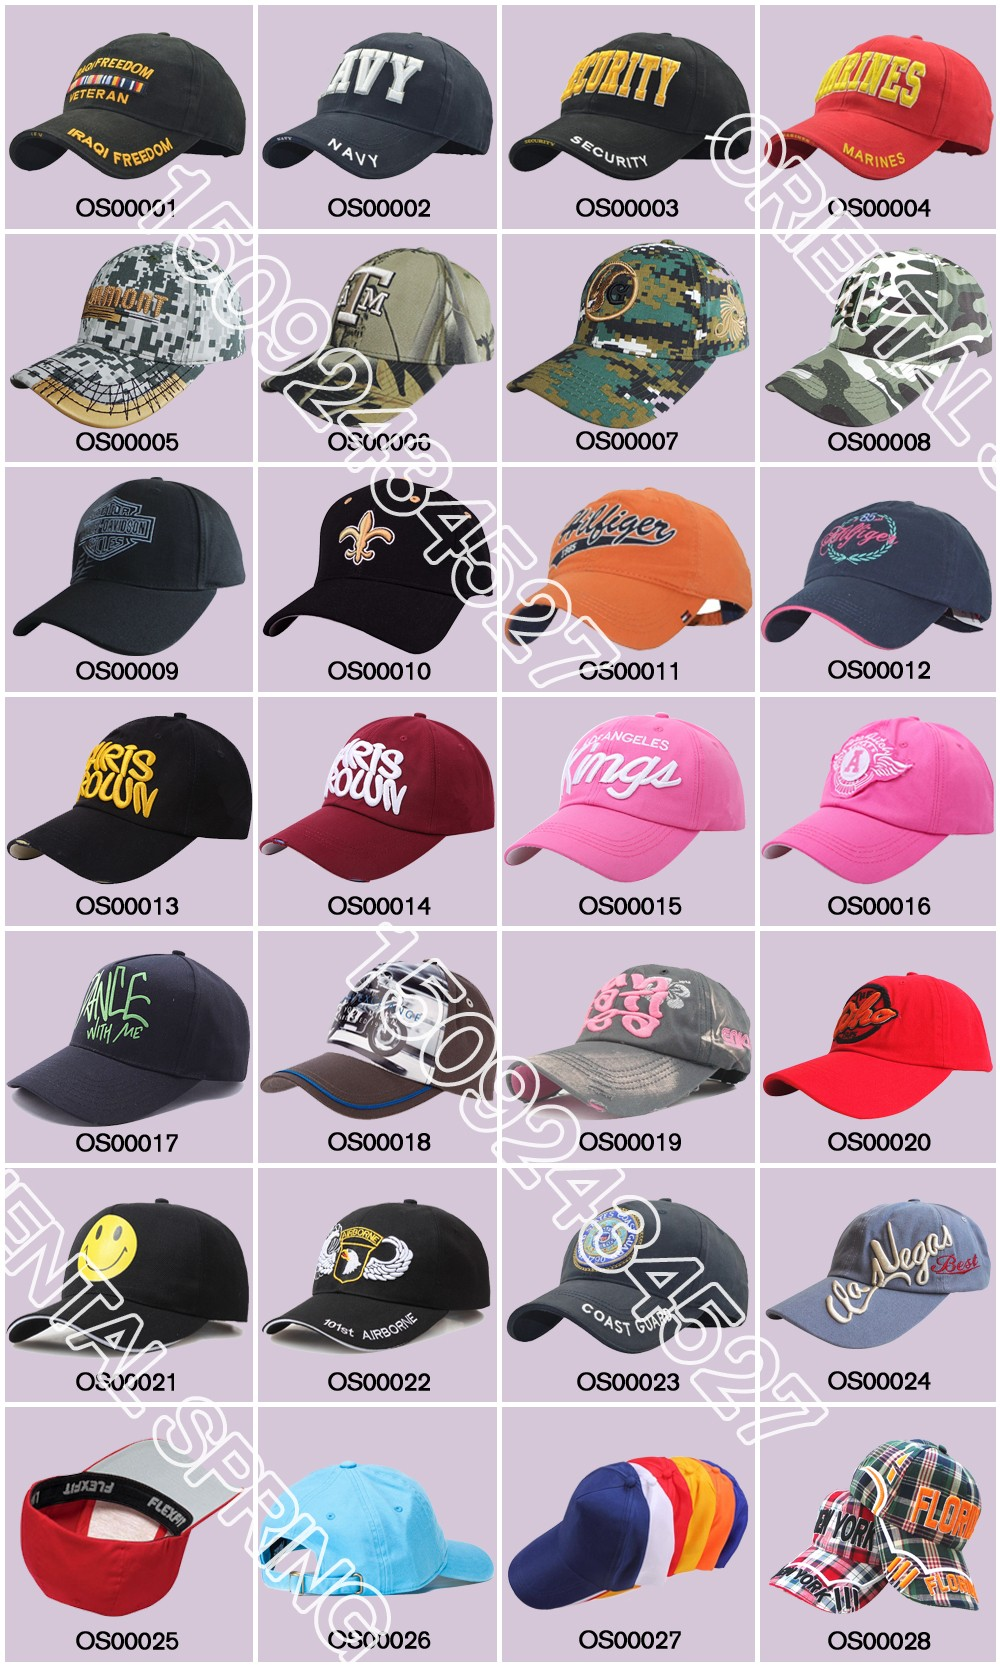 ccdca1ef201 Different Types Of Hats And Caps Men Caps And Hats - Buy Different ...